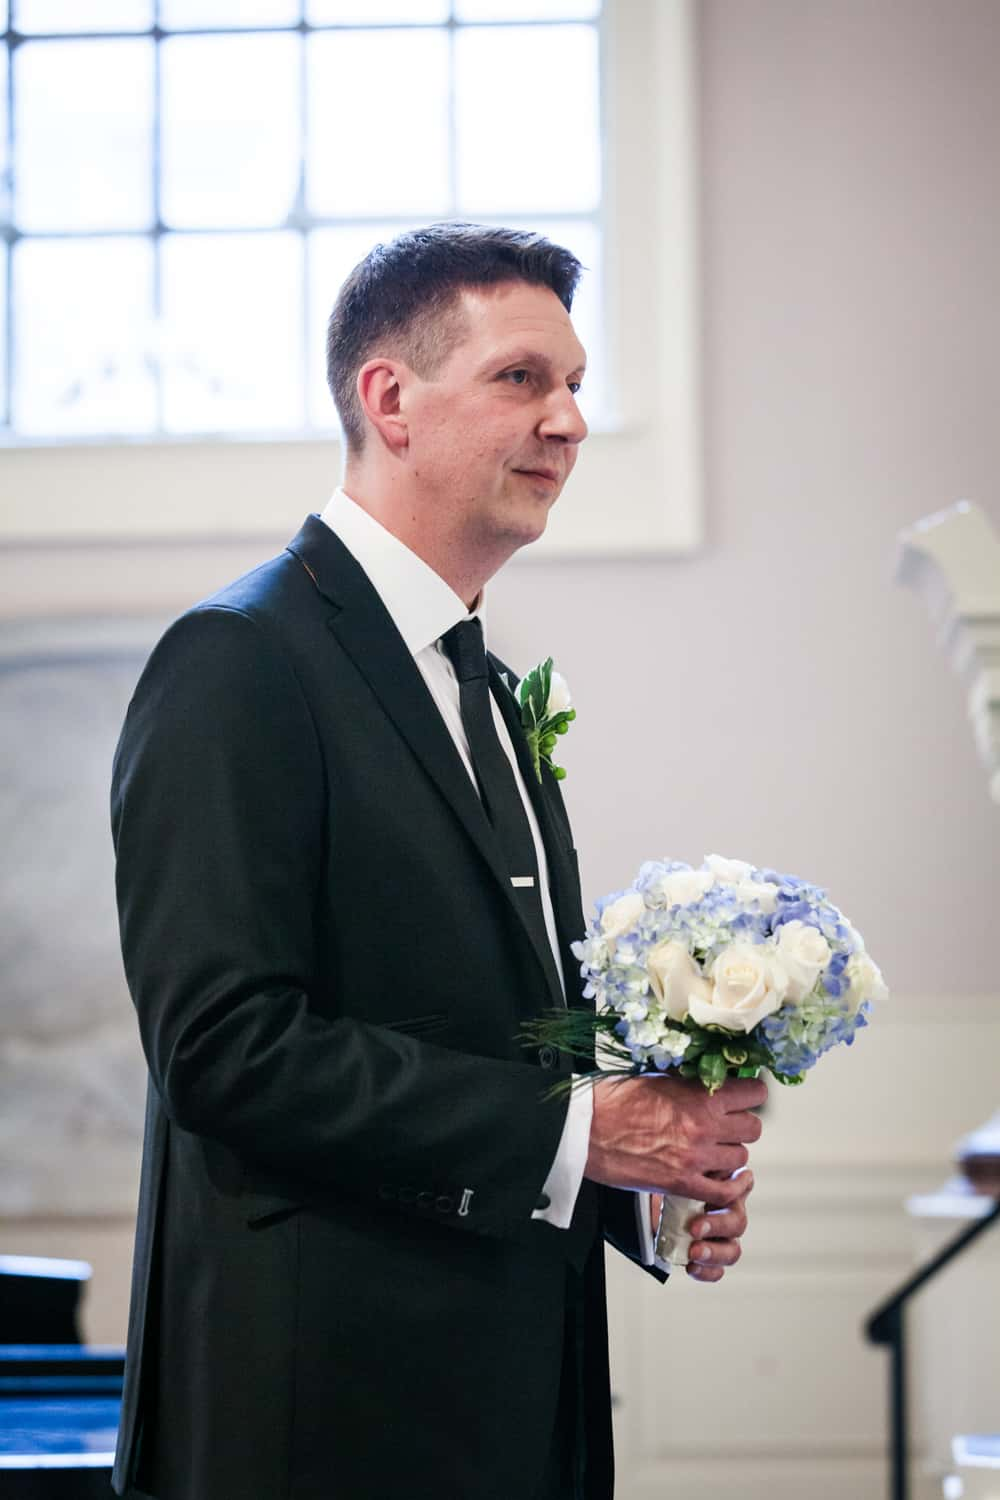 Groom holding bride's bouquet